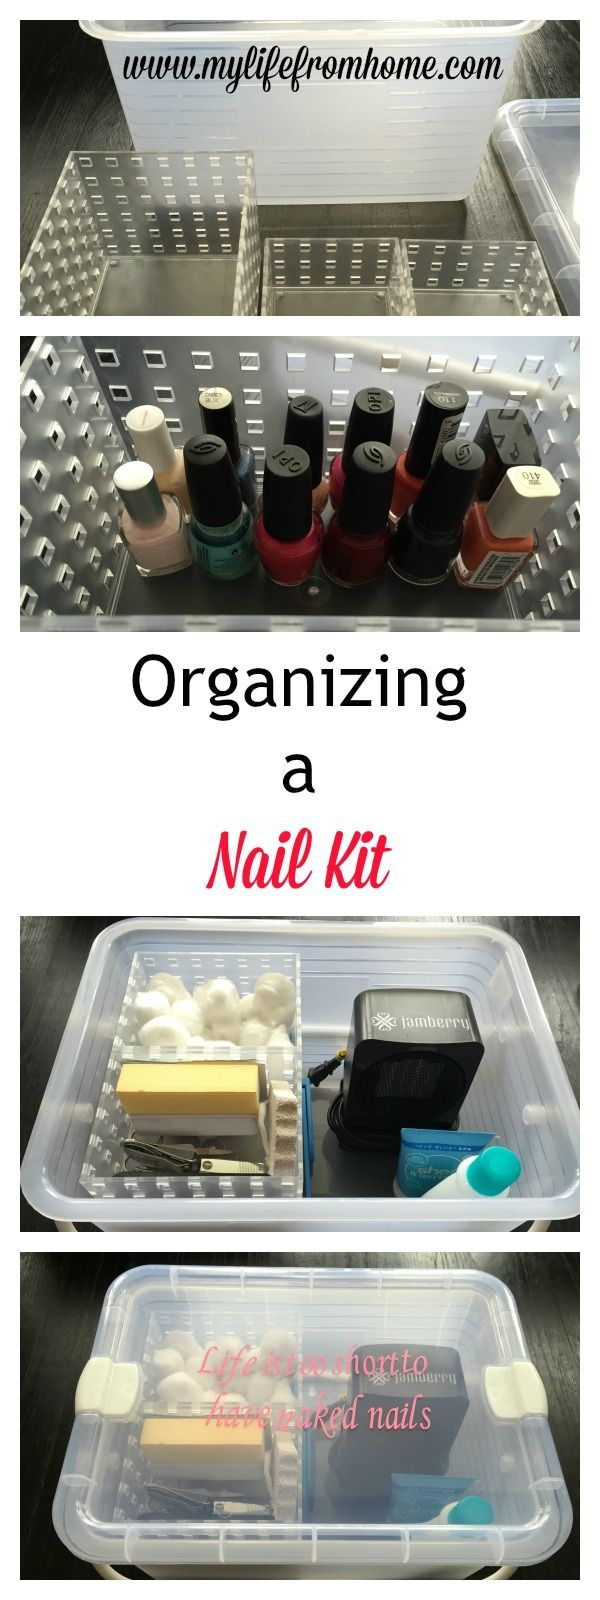 Tired of a jumble of nail polish under your cabinet? Here is step by step instructions to put together the ultimate nail care kit! A large caddy with a handle to carry anywhere! | My Life From Home | http://www.mylifefromhome.com | bathroom storage | small bath storage | nail polish kit | manicure kit | DIY nail kit | organizing nail polish